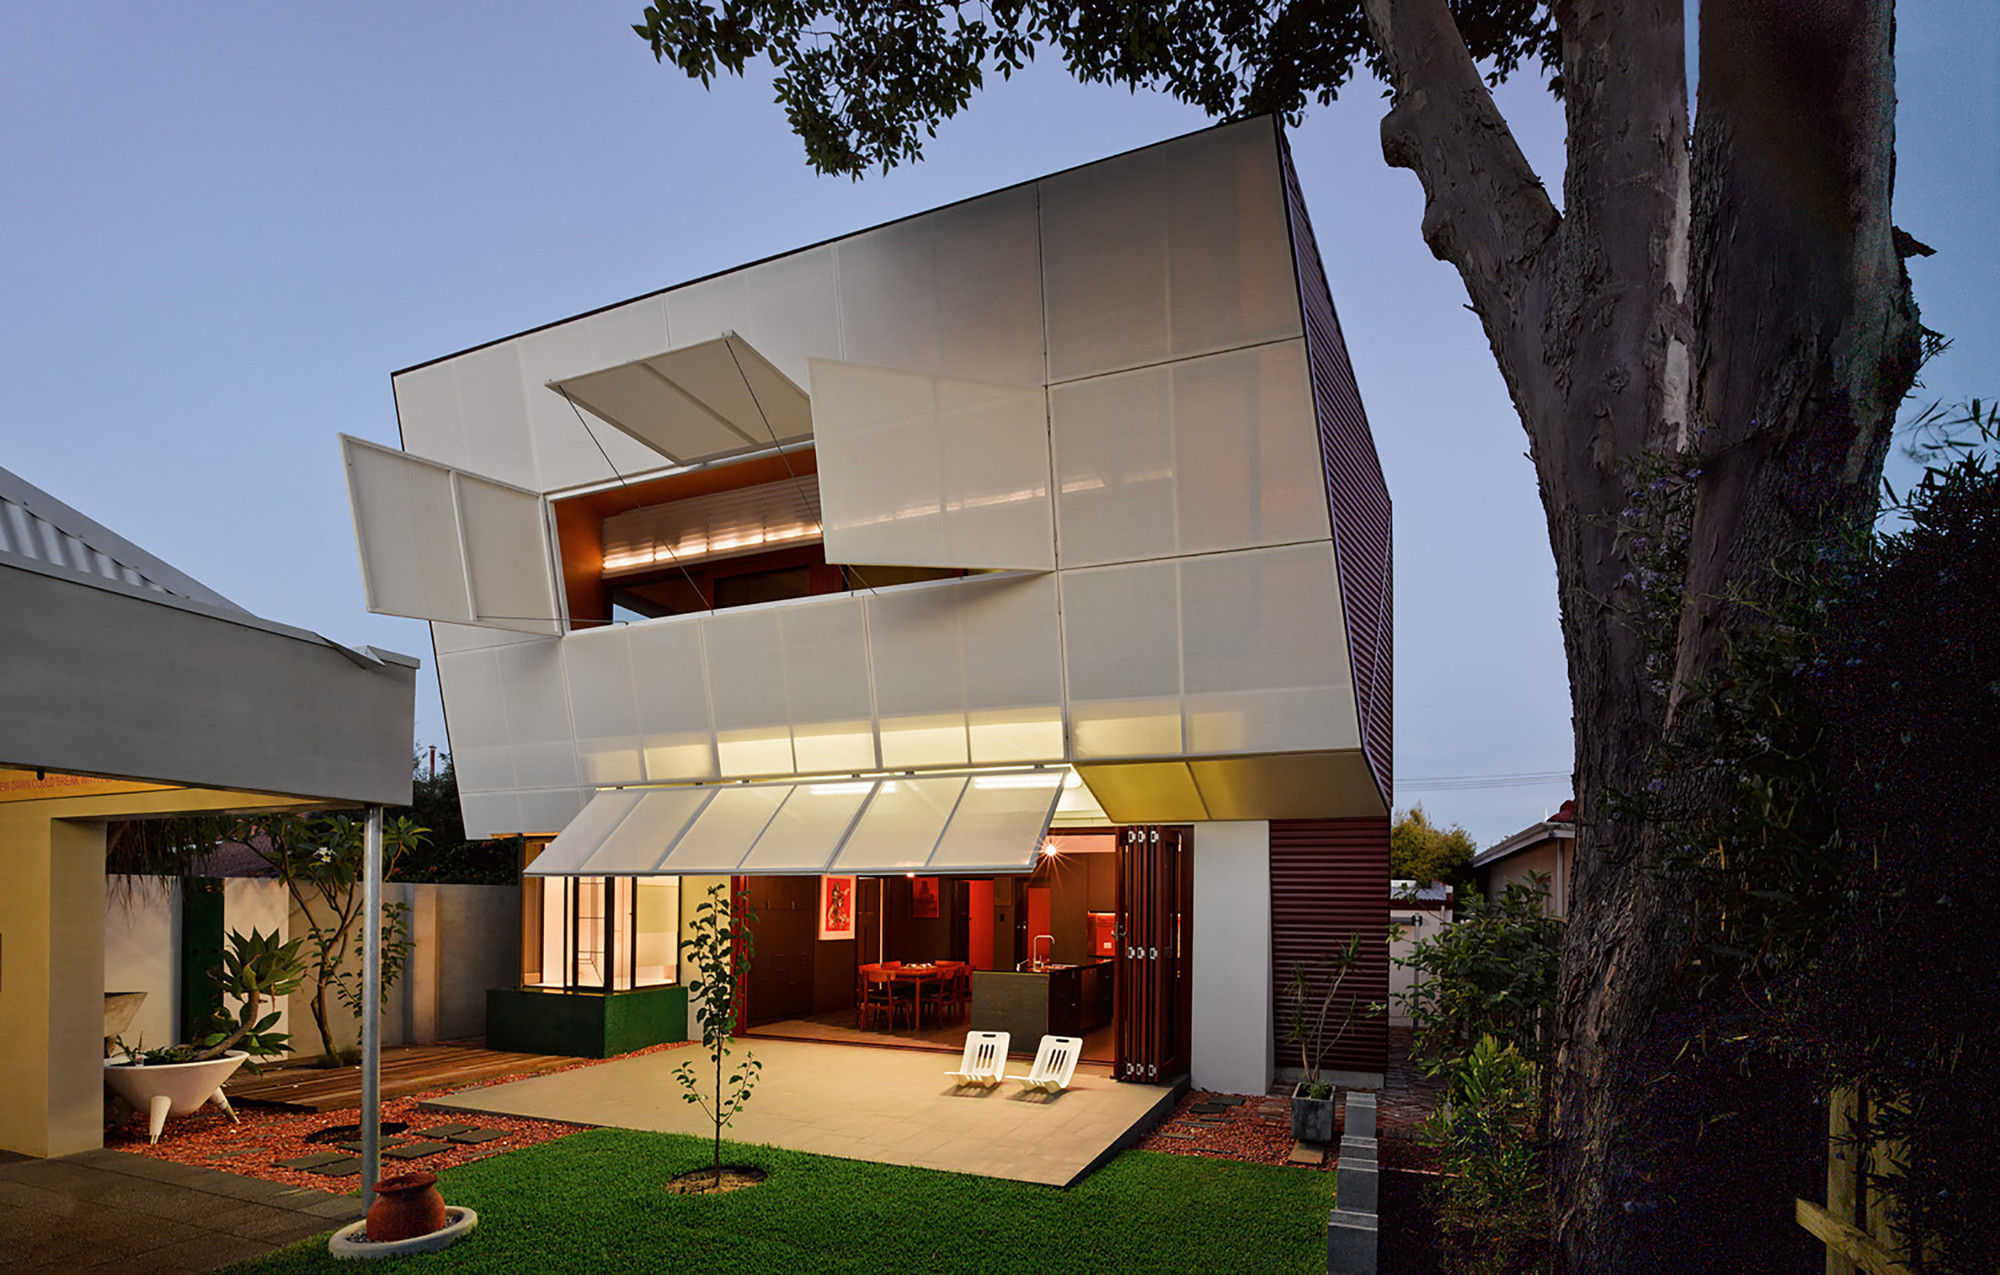 Casa 31_4 Room House / Caroline Di Costa Architect + Iredale Pedersen Hook Architects, © Peter Bennetts